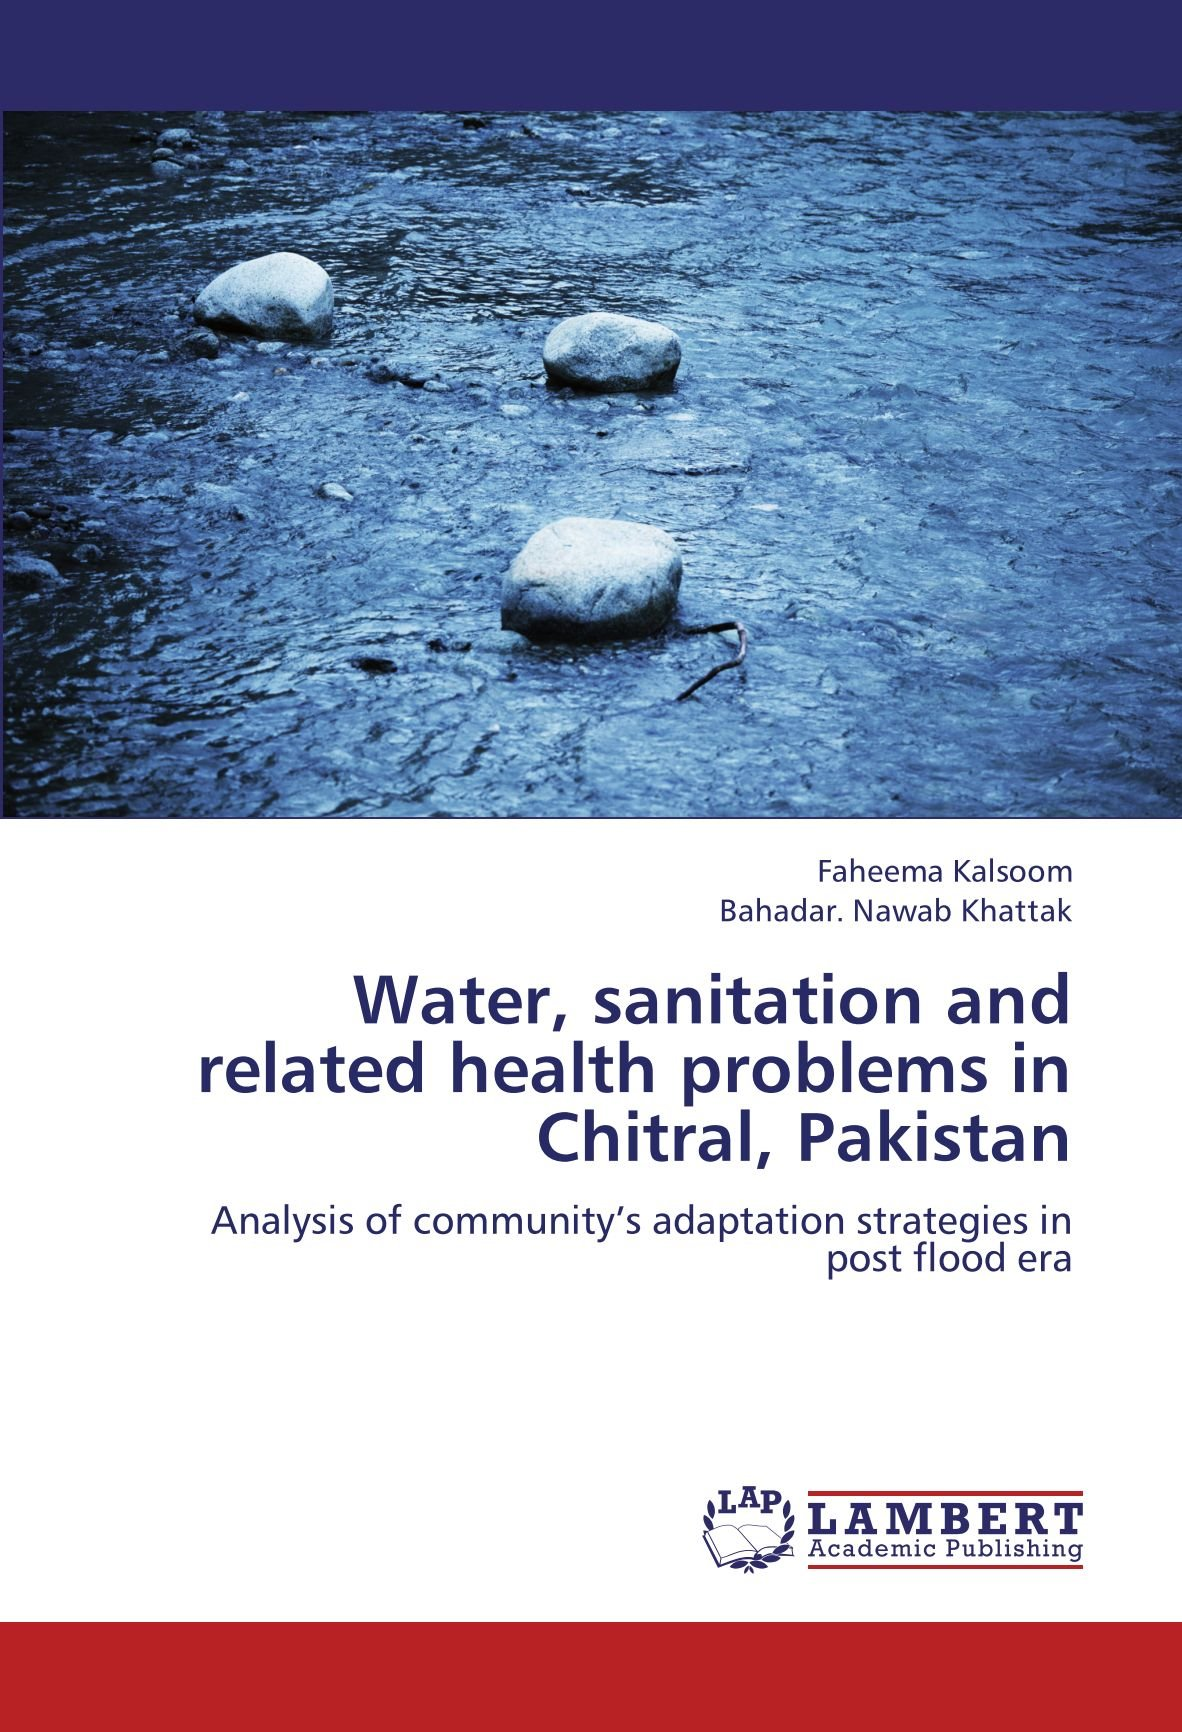 Download Water, sanitation and related health problems in Chitral, Pakistan: Analysis of community's adaptation strategies in post flood era ebook